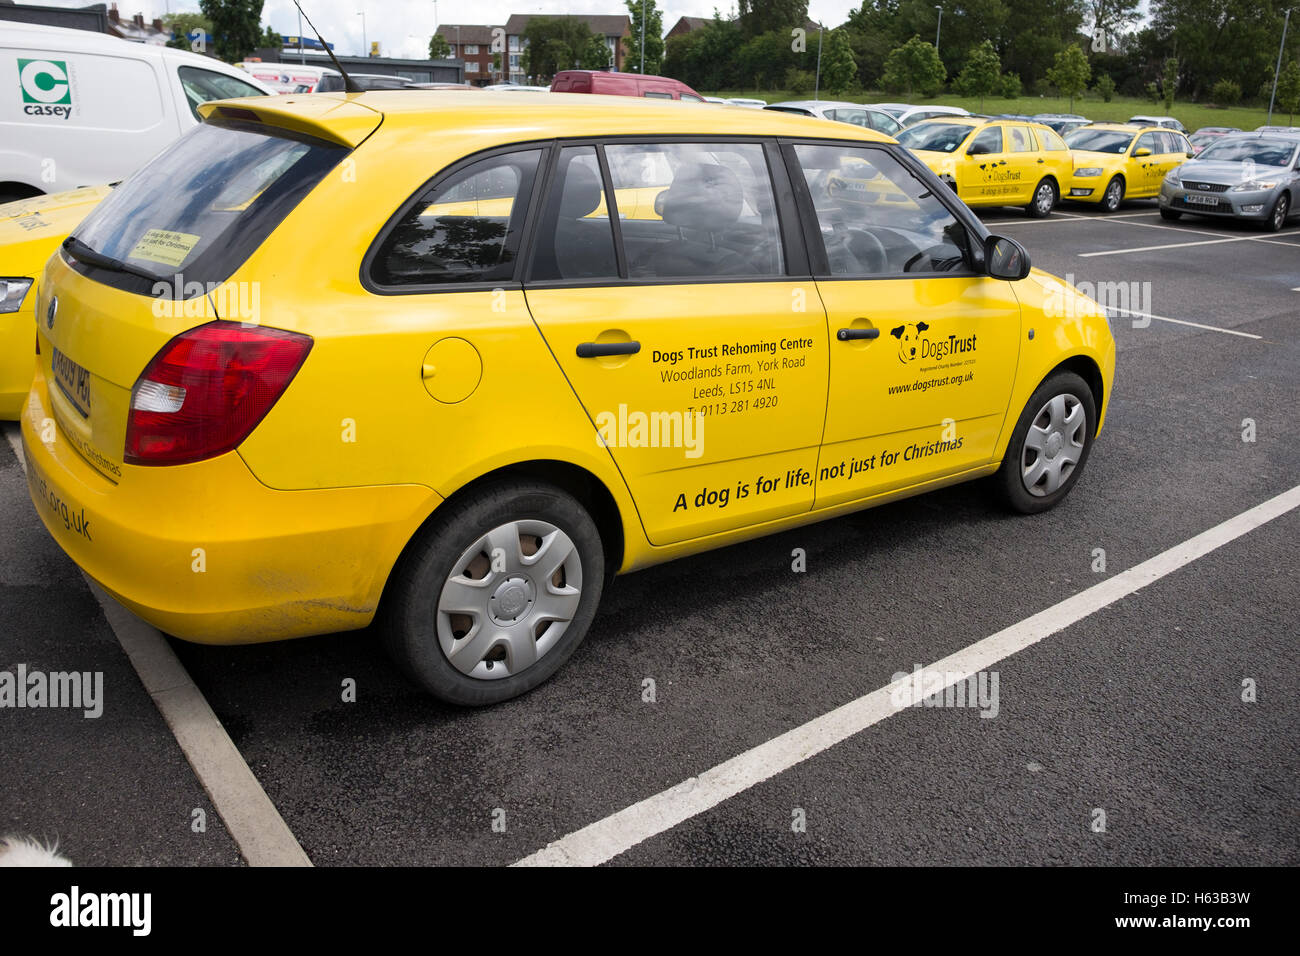 Dogs Trust Car Yellow Charity - Stock Image